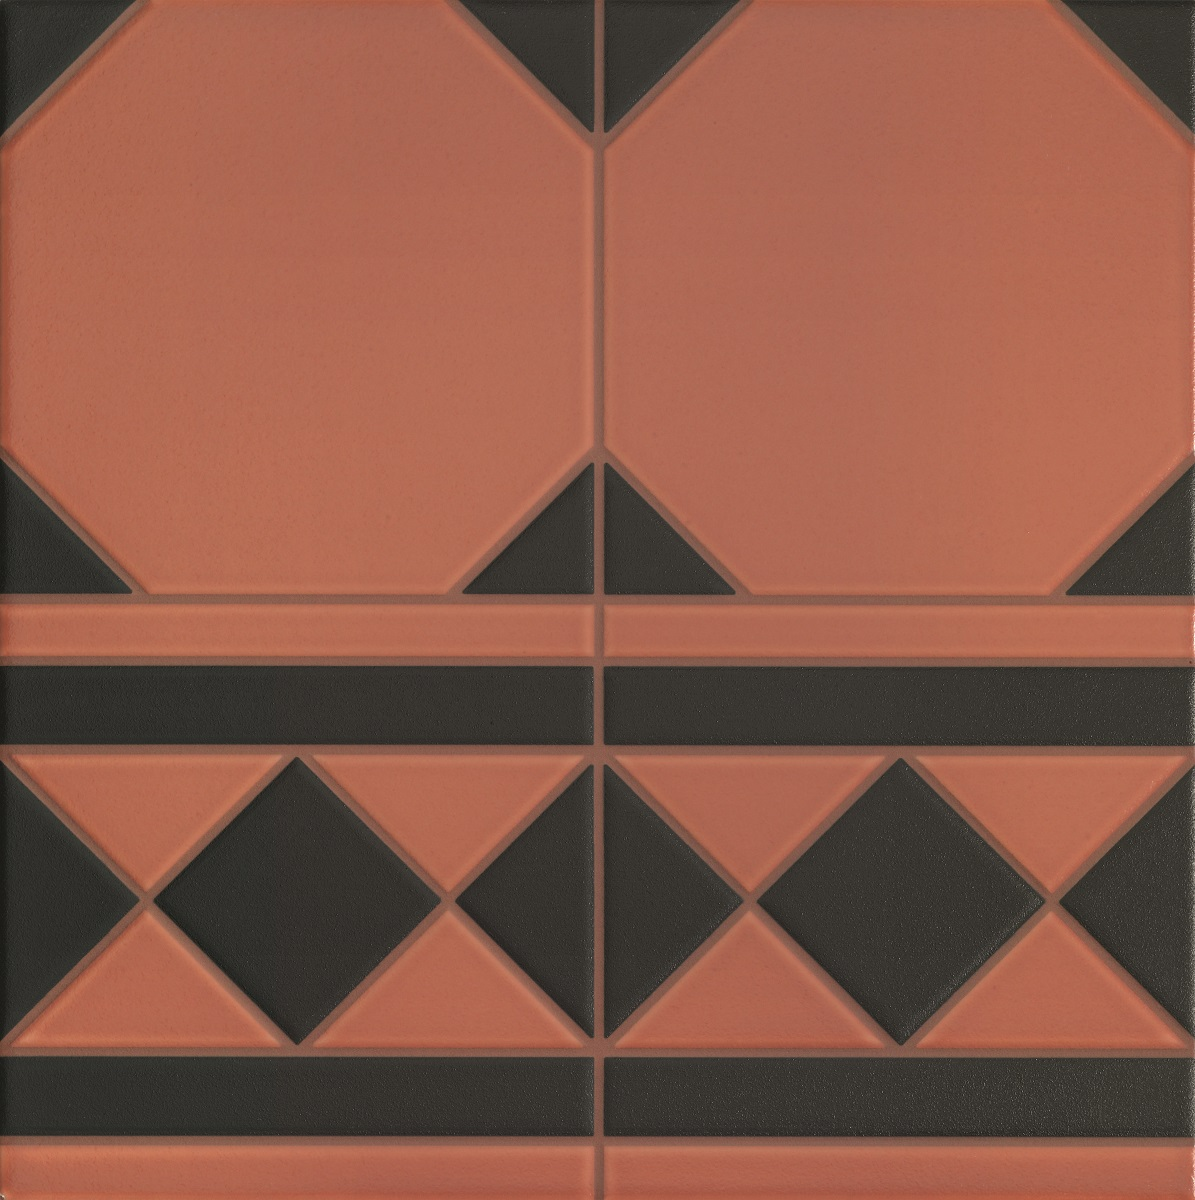 image/catalog/product_series_tiles/720/oxford_cenefa_terra_1_smaller_pixel.jpg